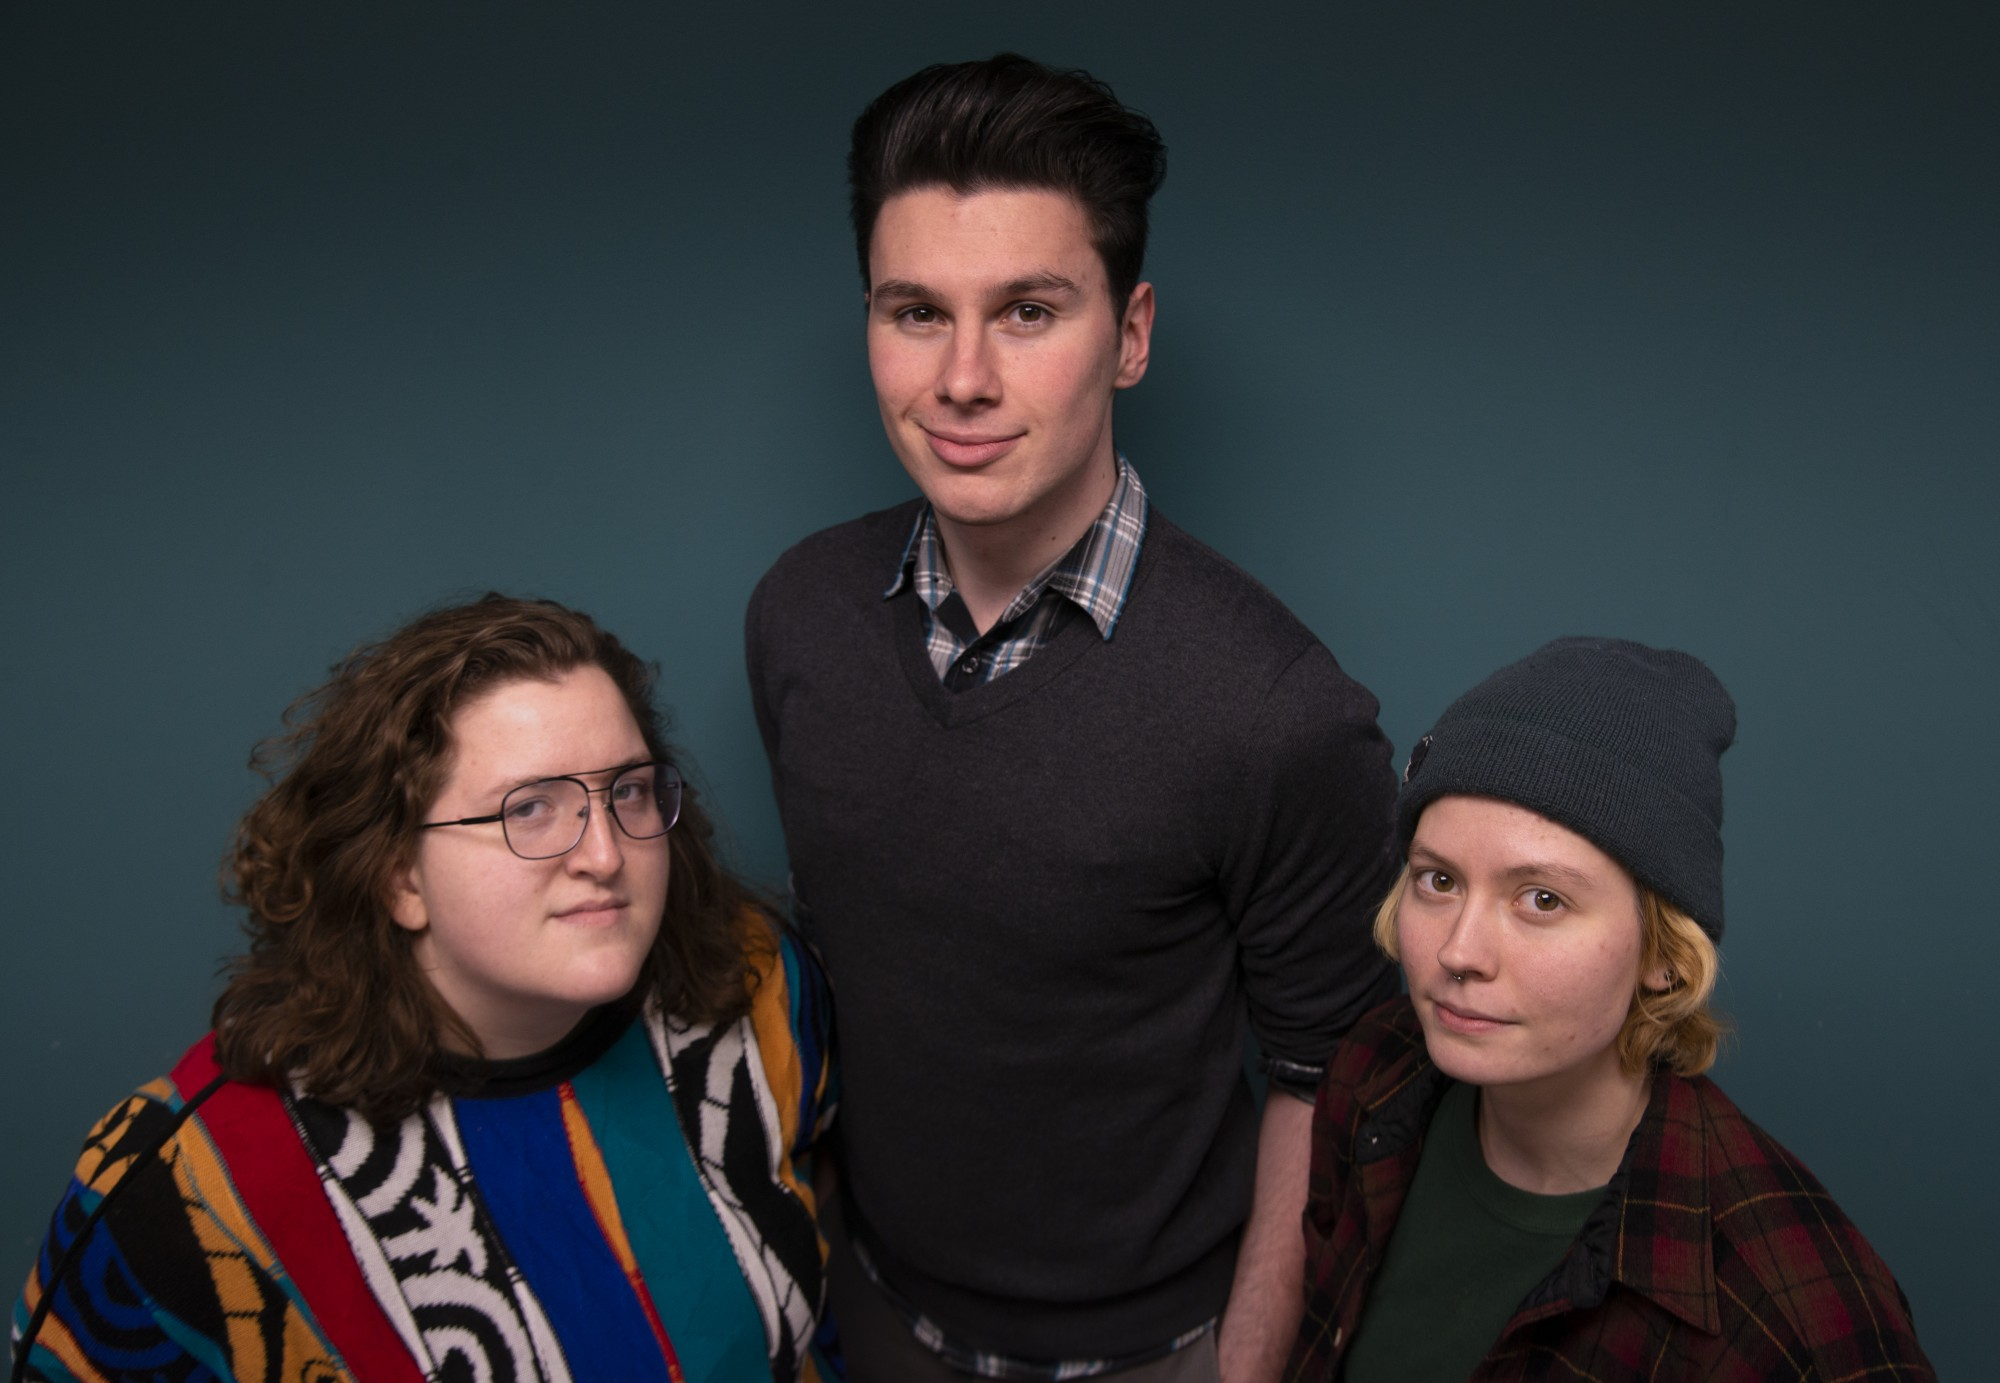 From left, Loring Collective board members Melissa Riper, Tony Burton and Izzy Voigt pose for a portrait on Friday, Feb. 7. The group aims to empower queer creatives in the Twin Cities by creating platforms for authentic expression and facilitating collaboration.